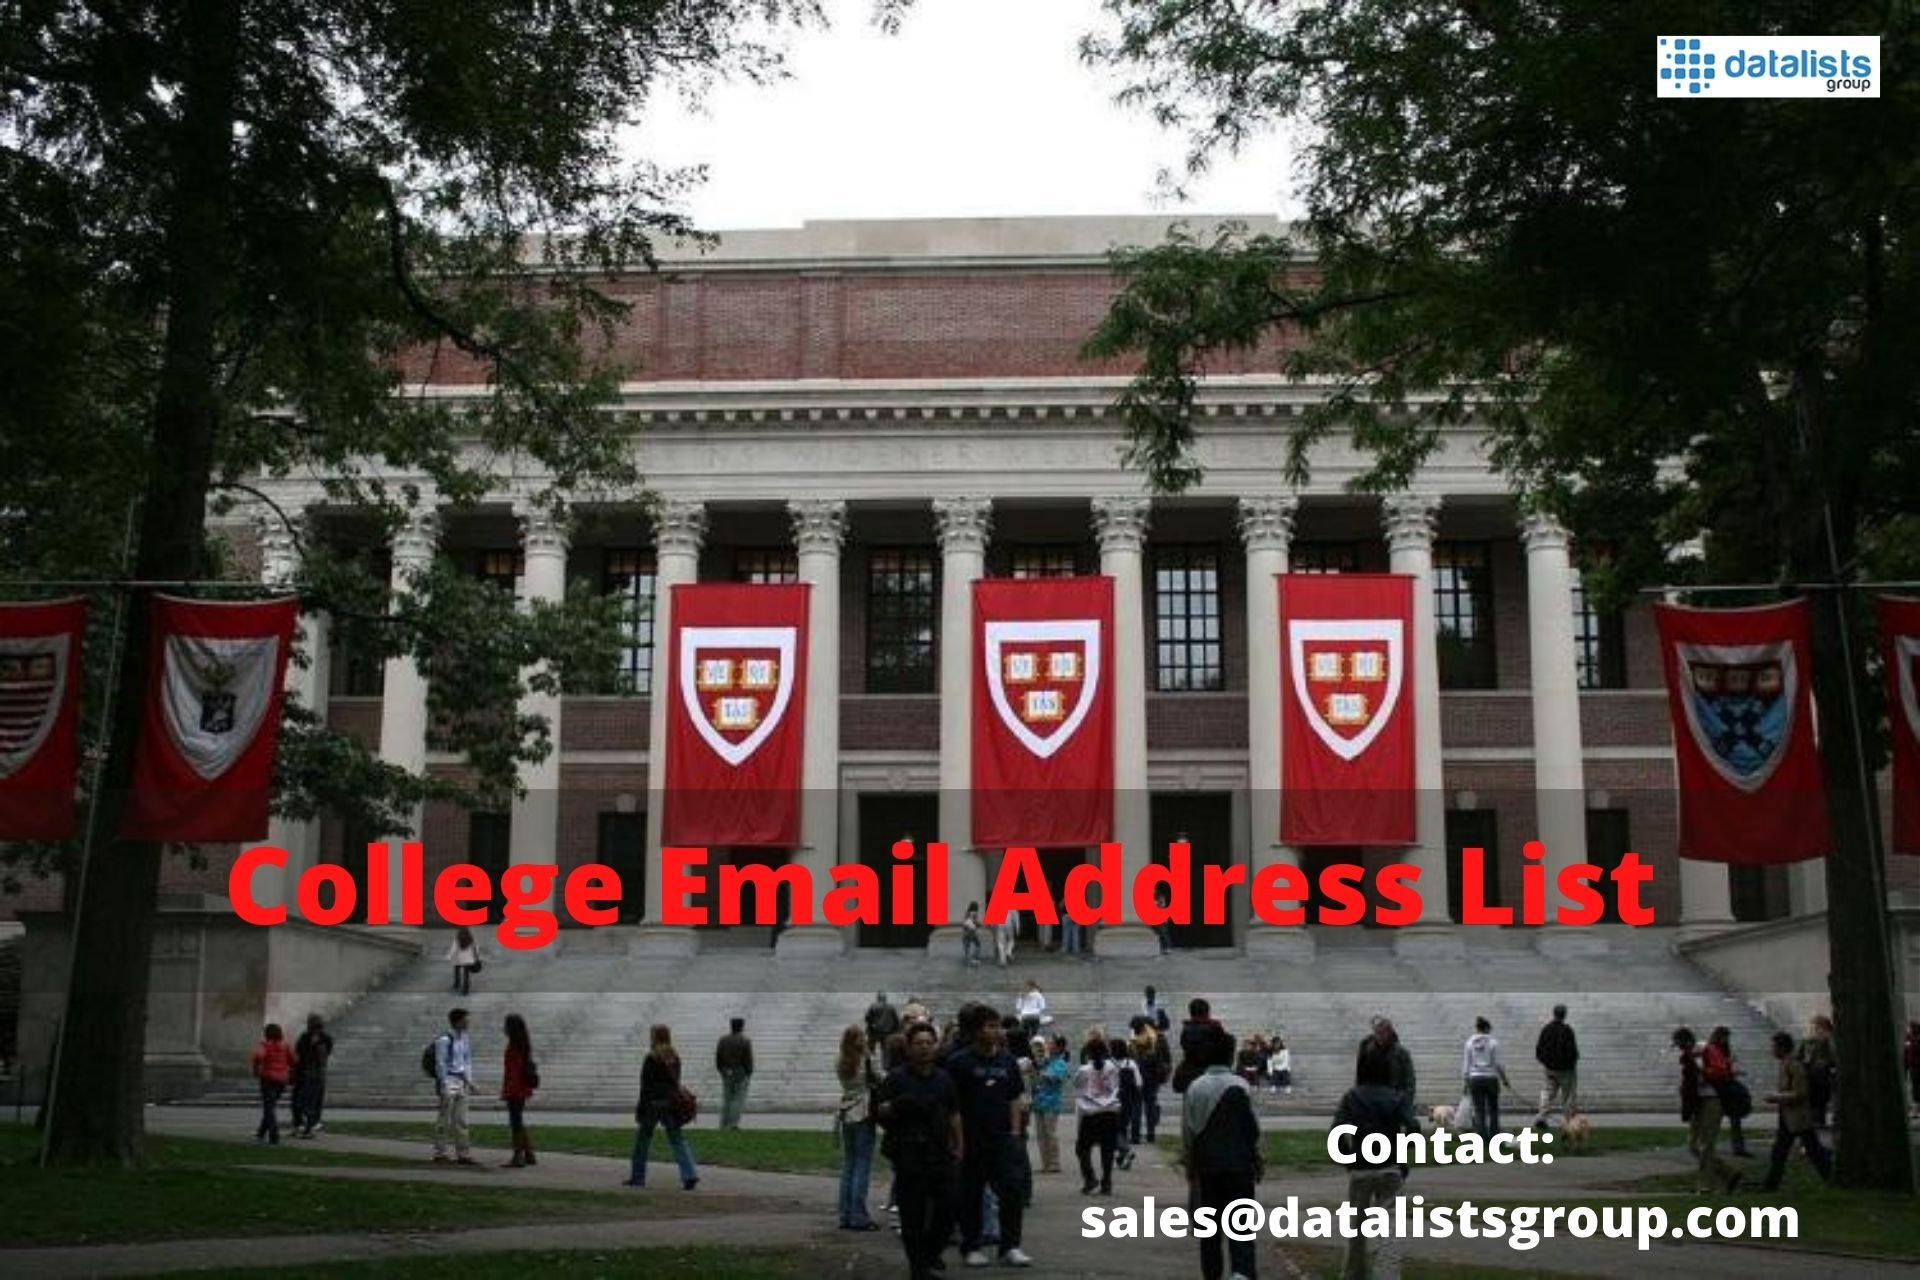 DataListsGroup offers Comprehensive College Email Address List to Simplify Marketing Campaigns